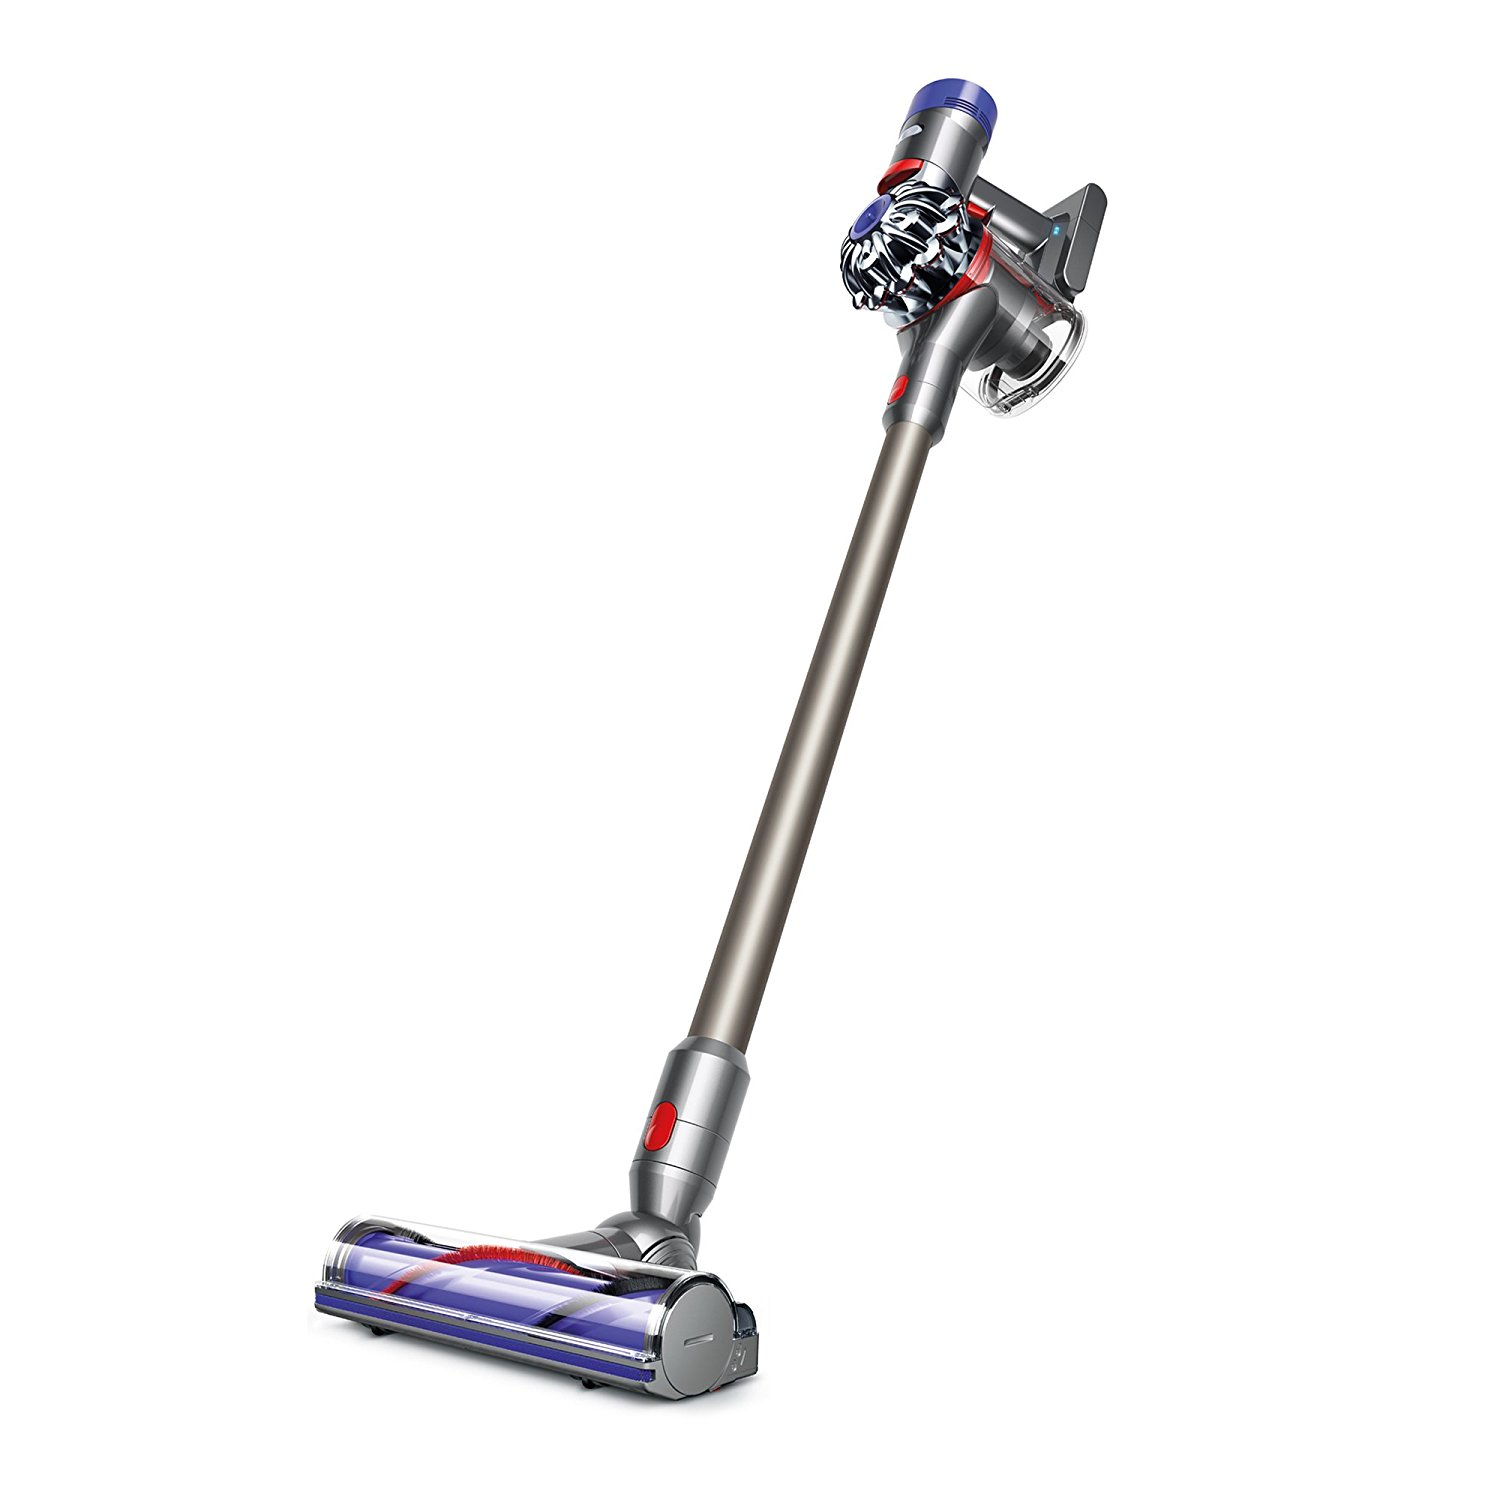 Image of Dyson V8 Animal Cord-free Vacuum Cleaner